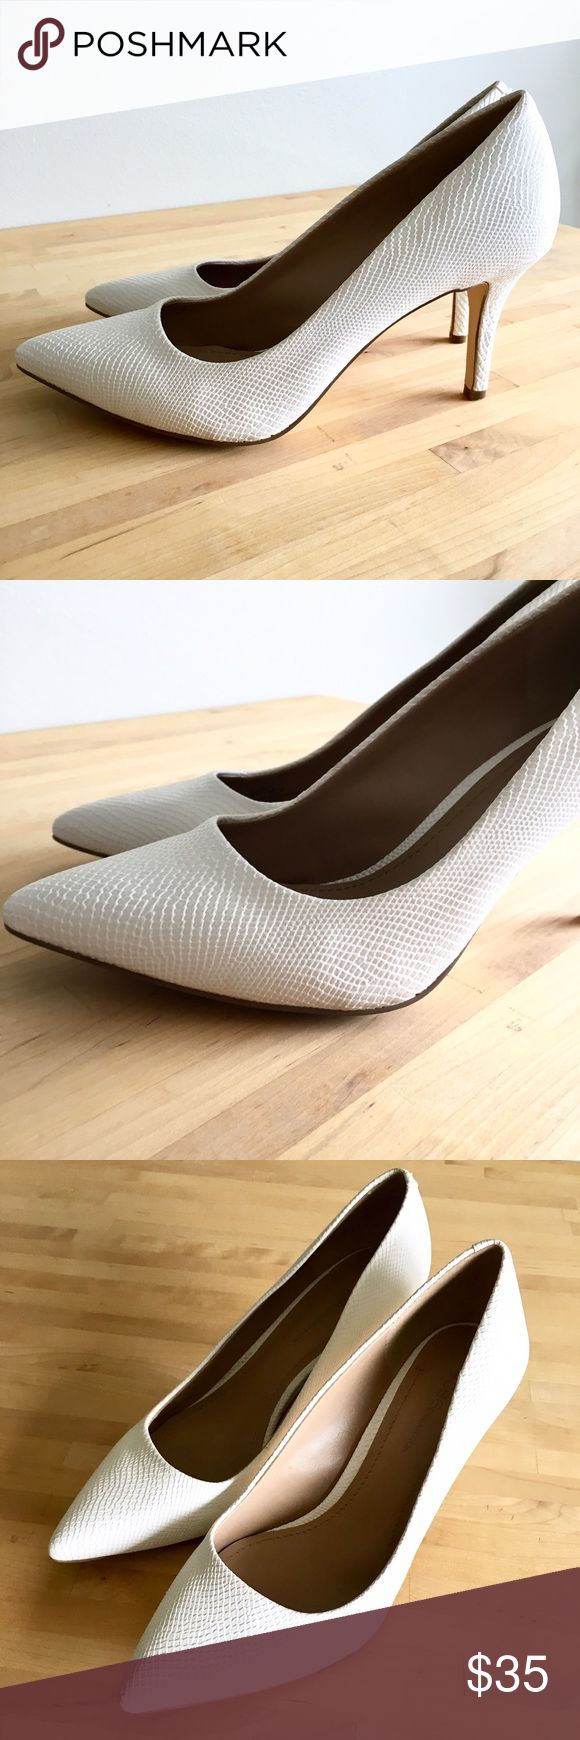 BCBG White Snakeskin Heels White heels with a snakeskin style texture from BCBGeneration. In great condition overall. Insides look like new! Small gay smudge above heel on right shoe, shown in pictures. TTS. BCBGeneration Shoes Heels